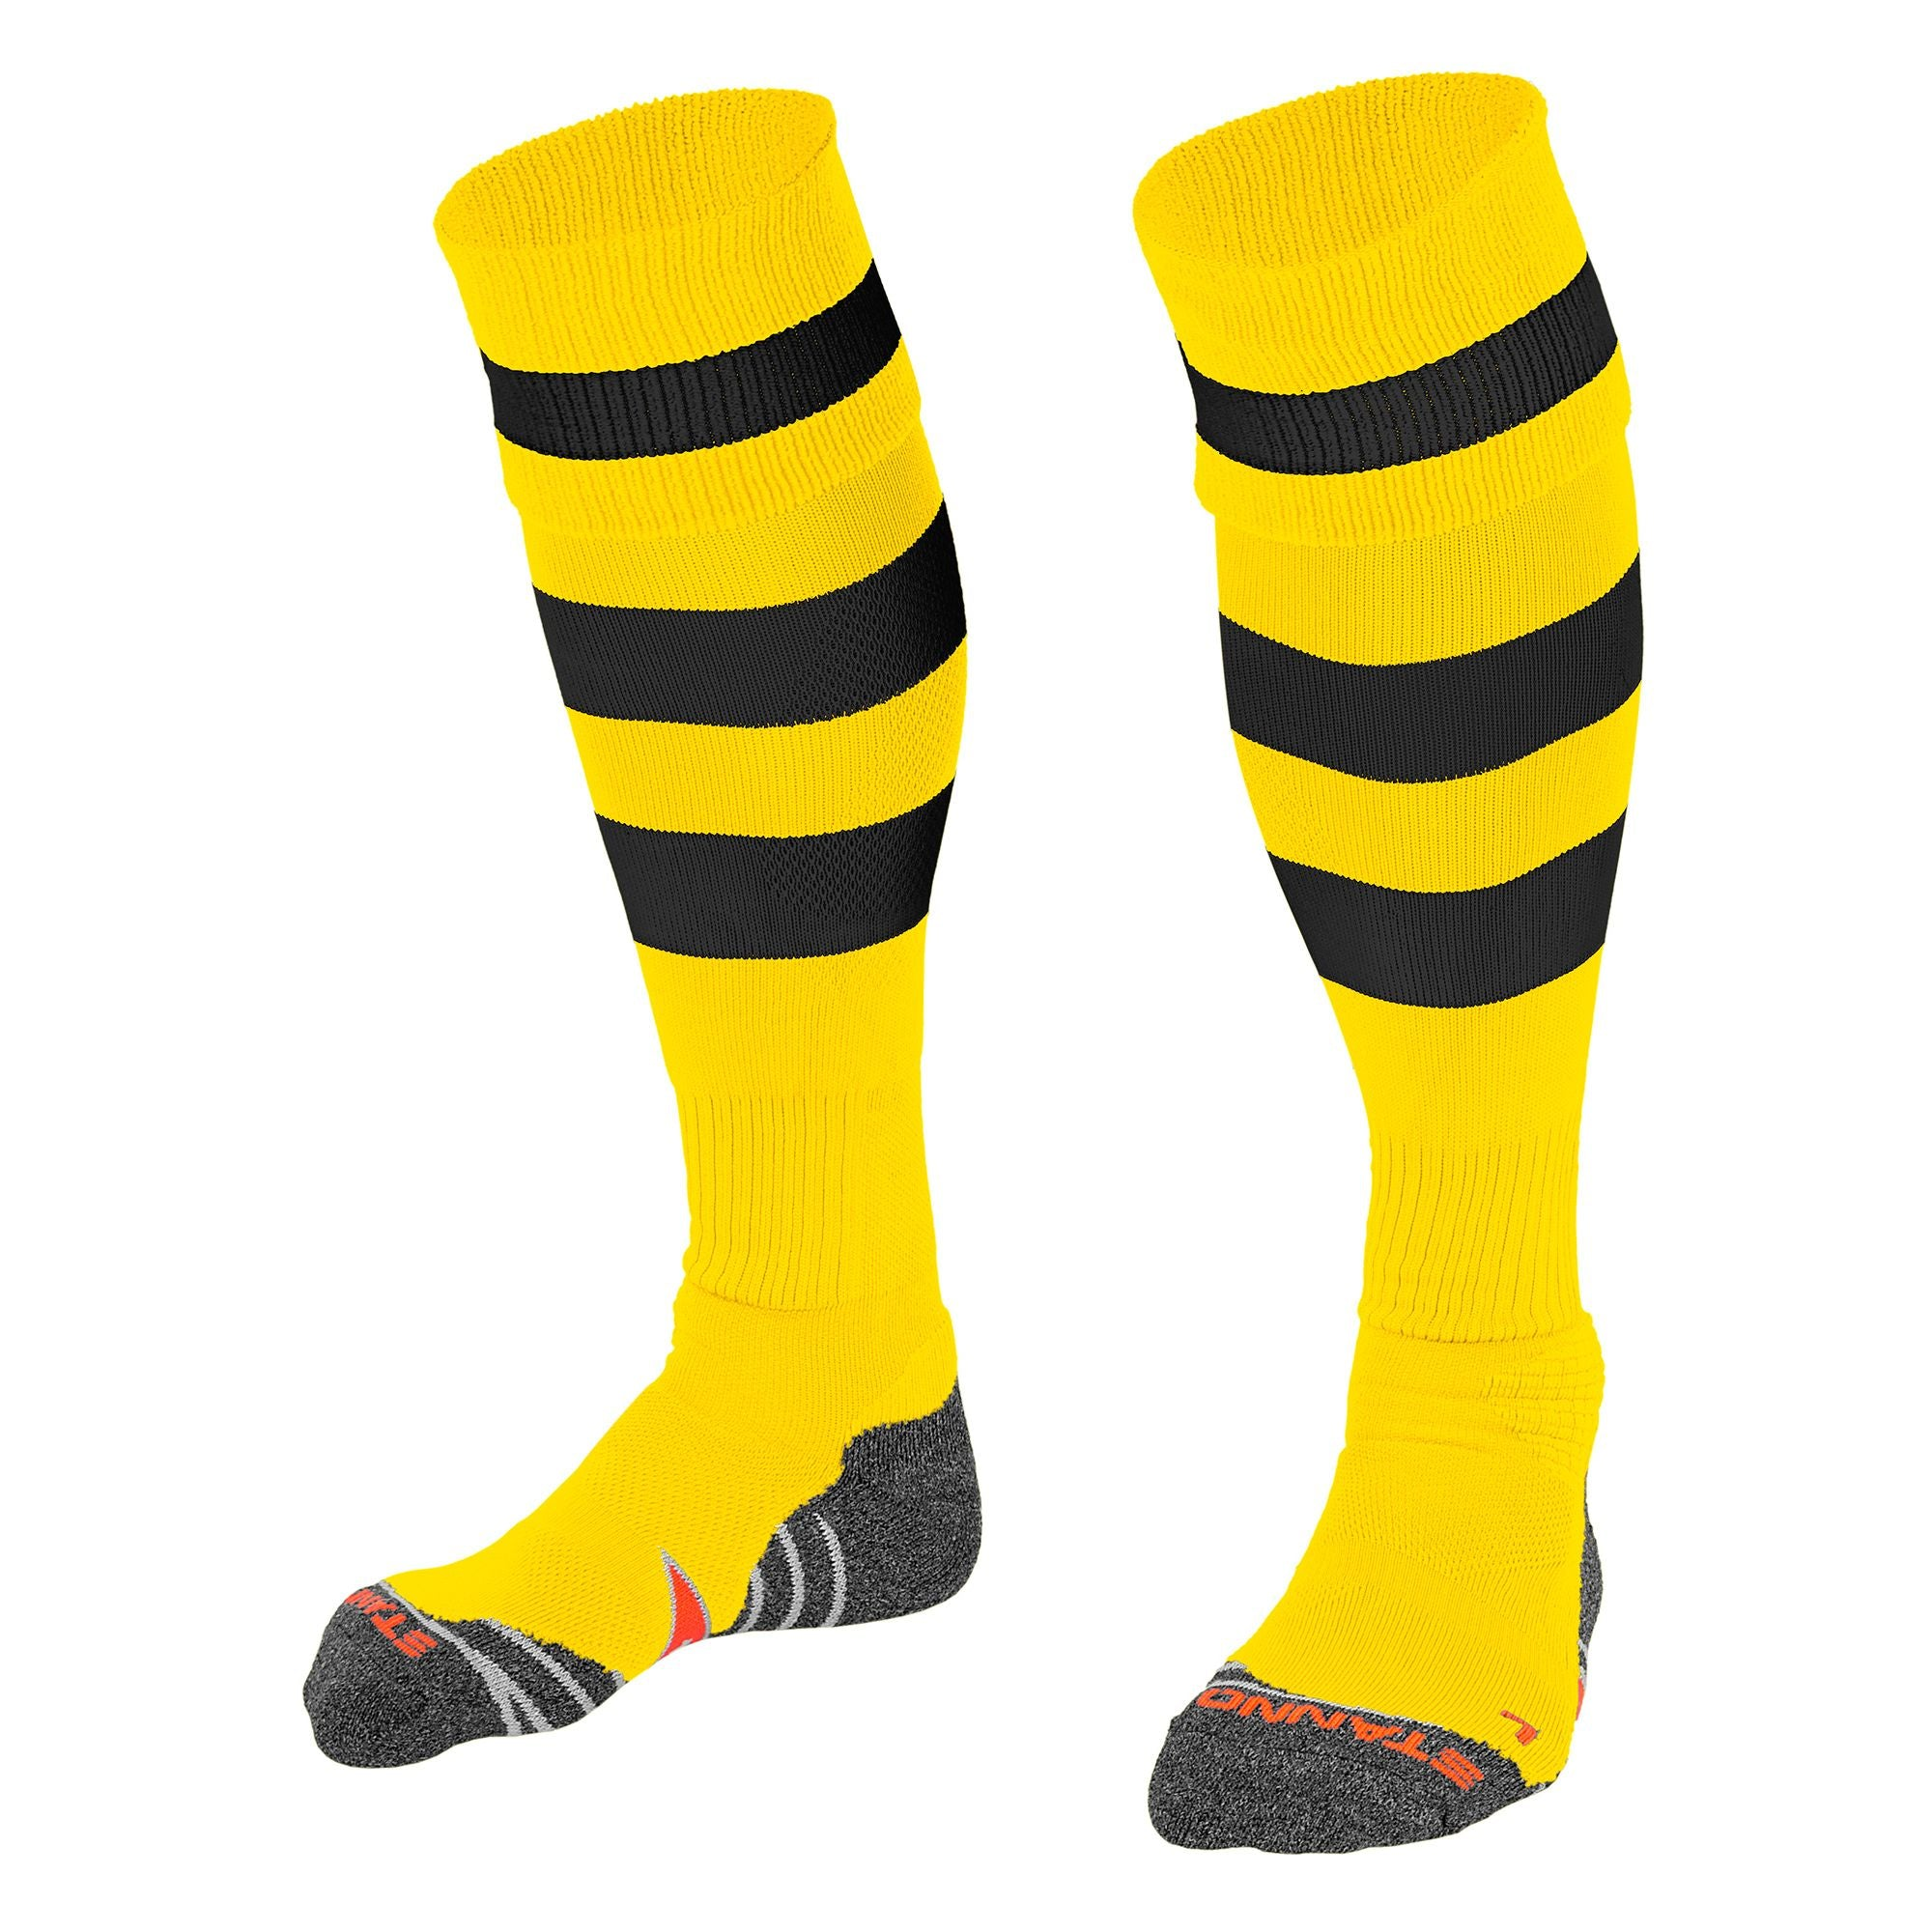 Stanno Original sock in yellow with 2 thick horizontal black stripes through the centre of the sock and one on the turnover. d